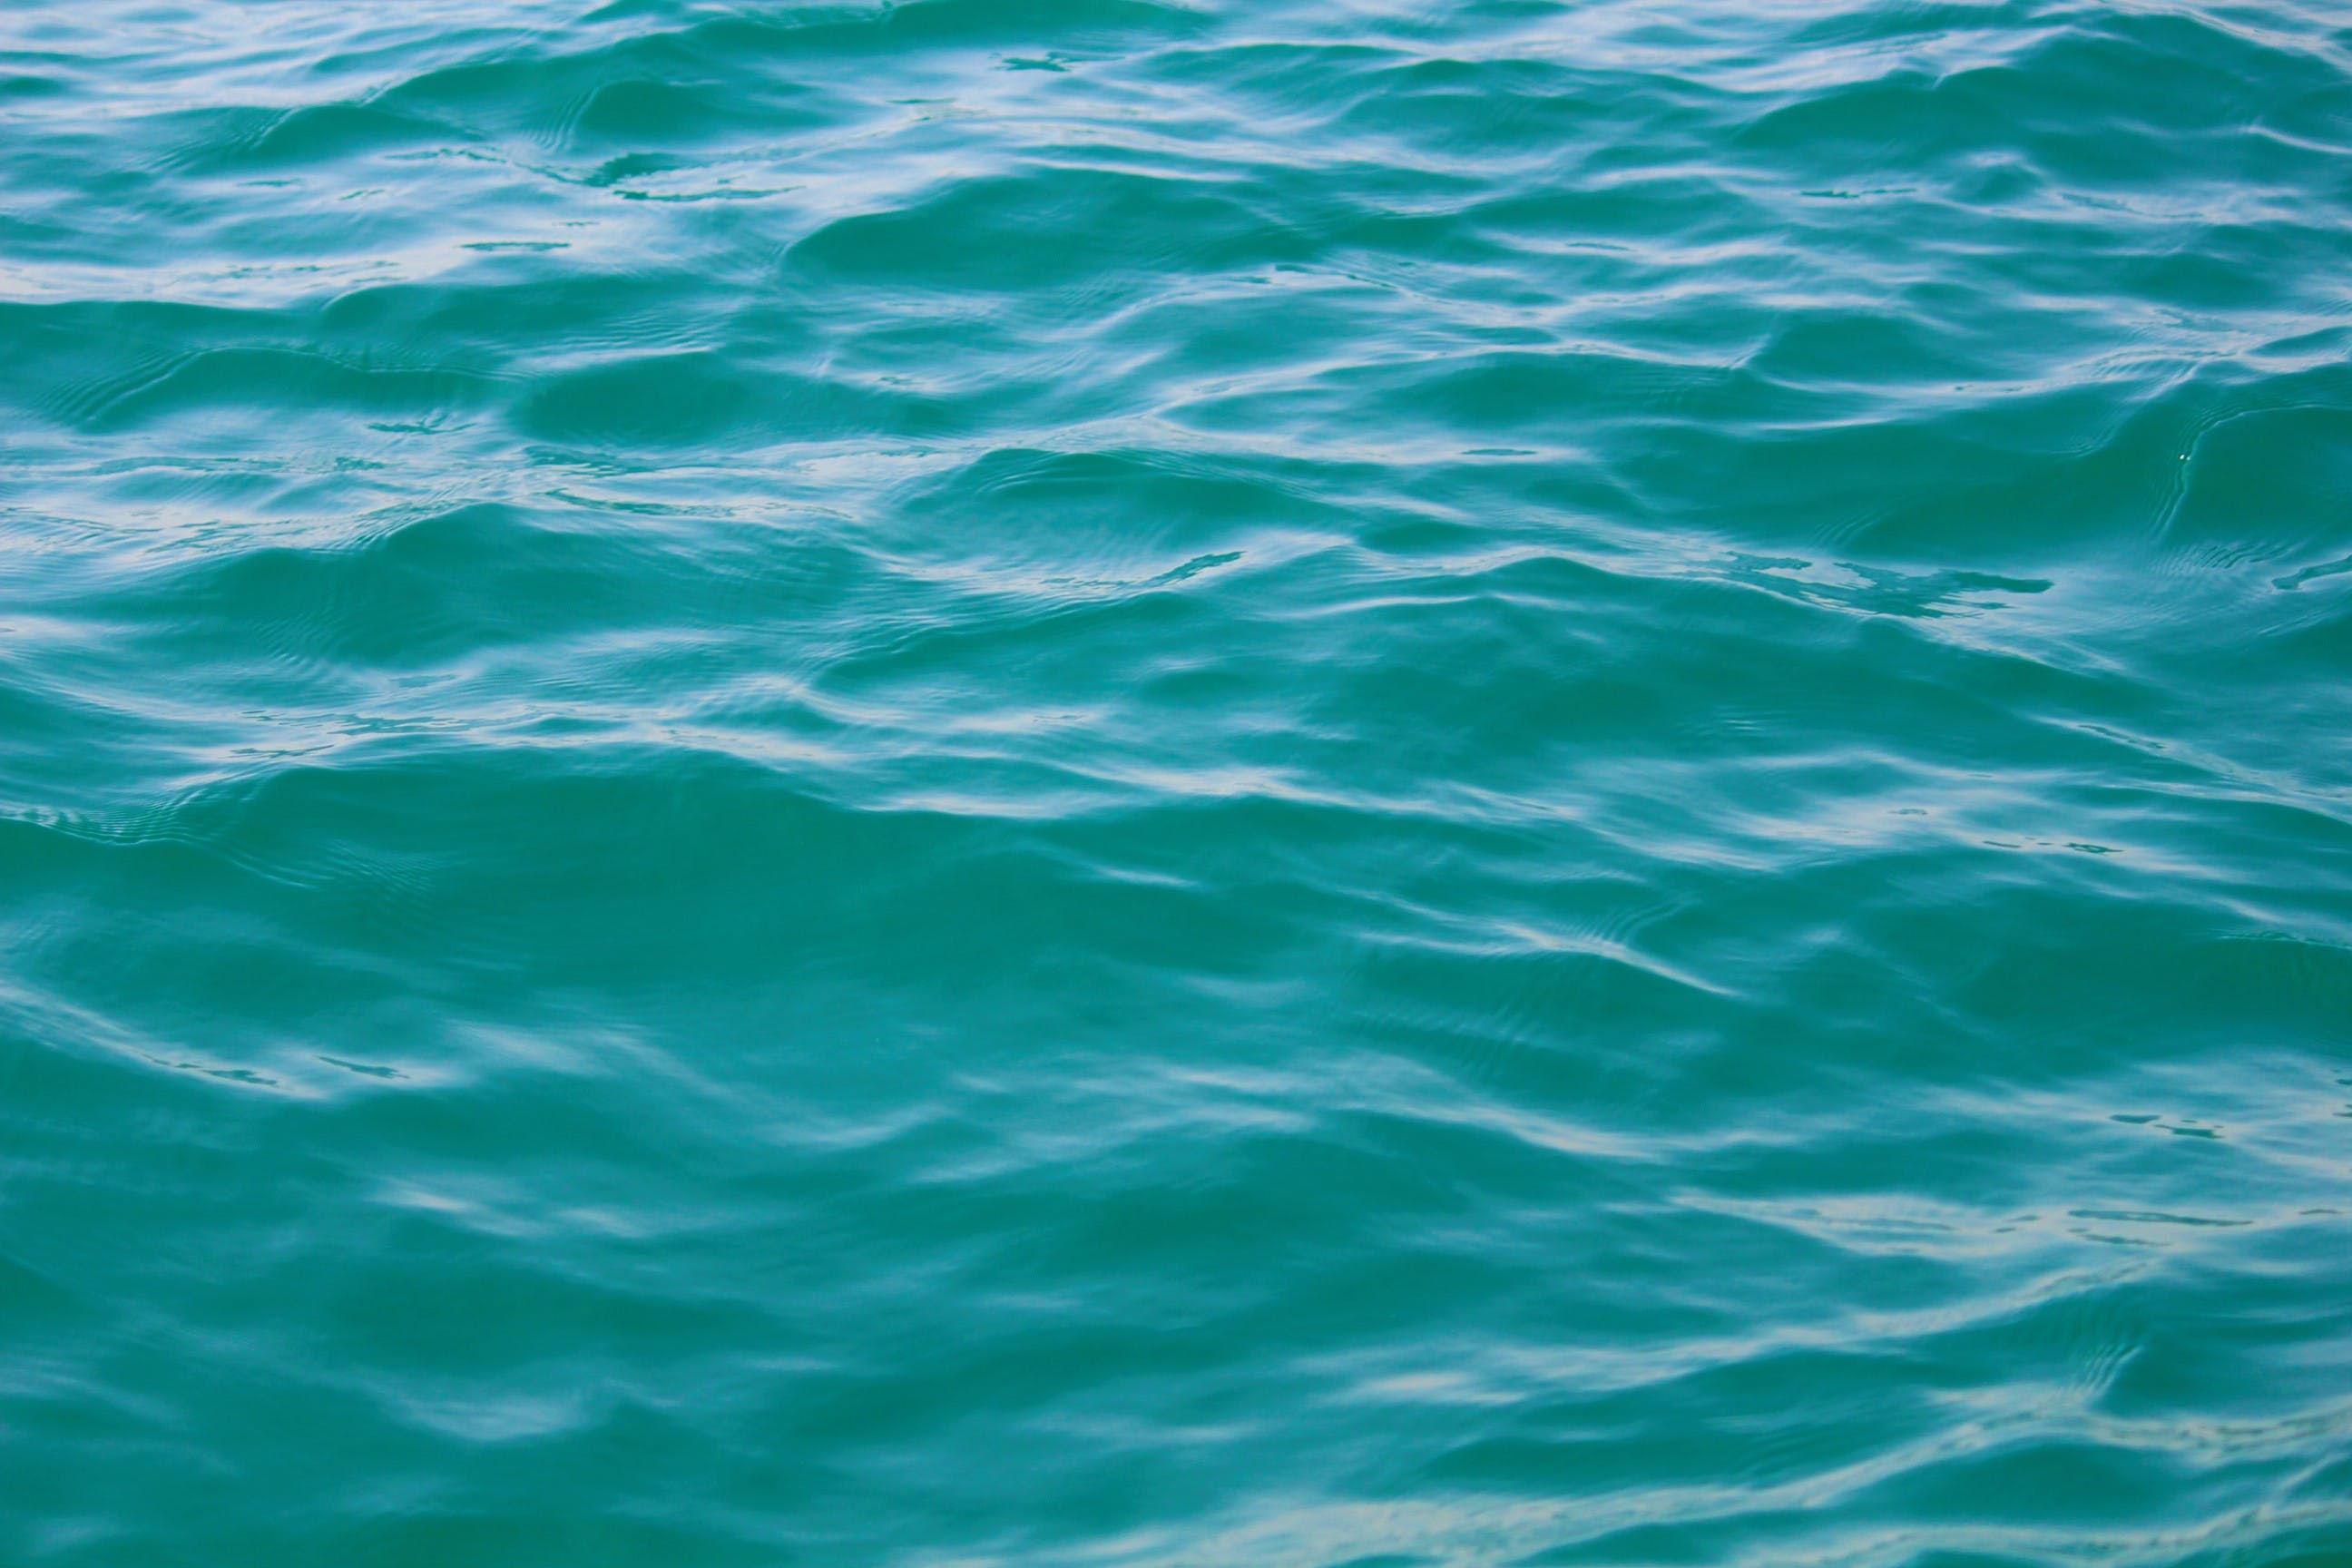 Photo of Ripple of Water